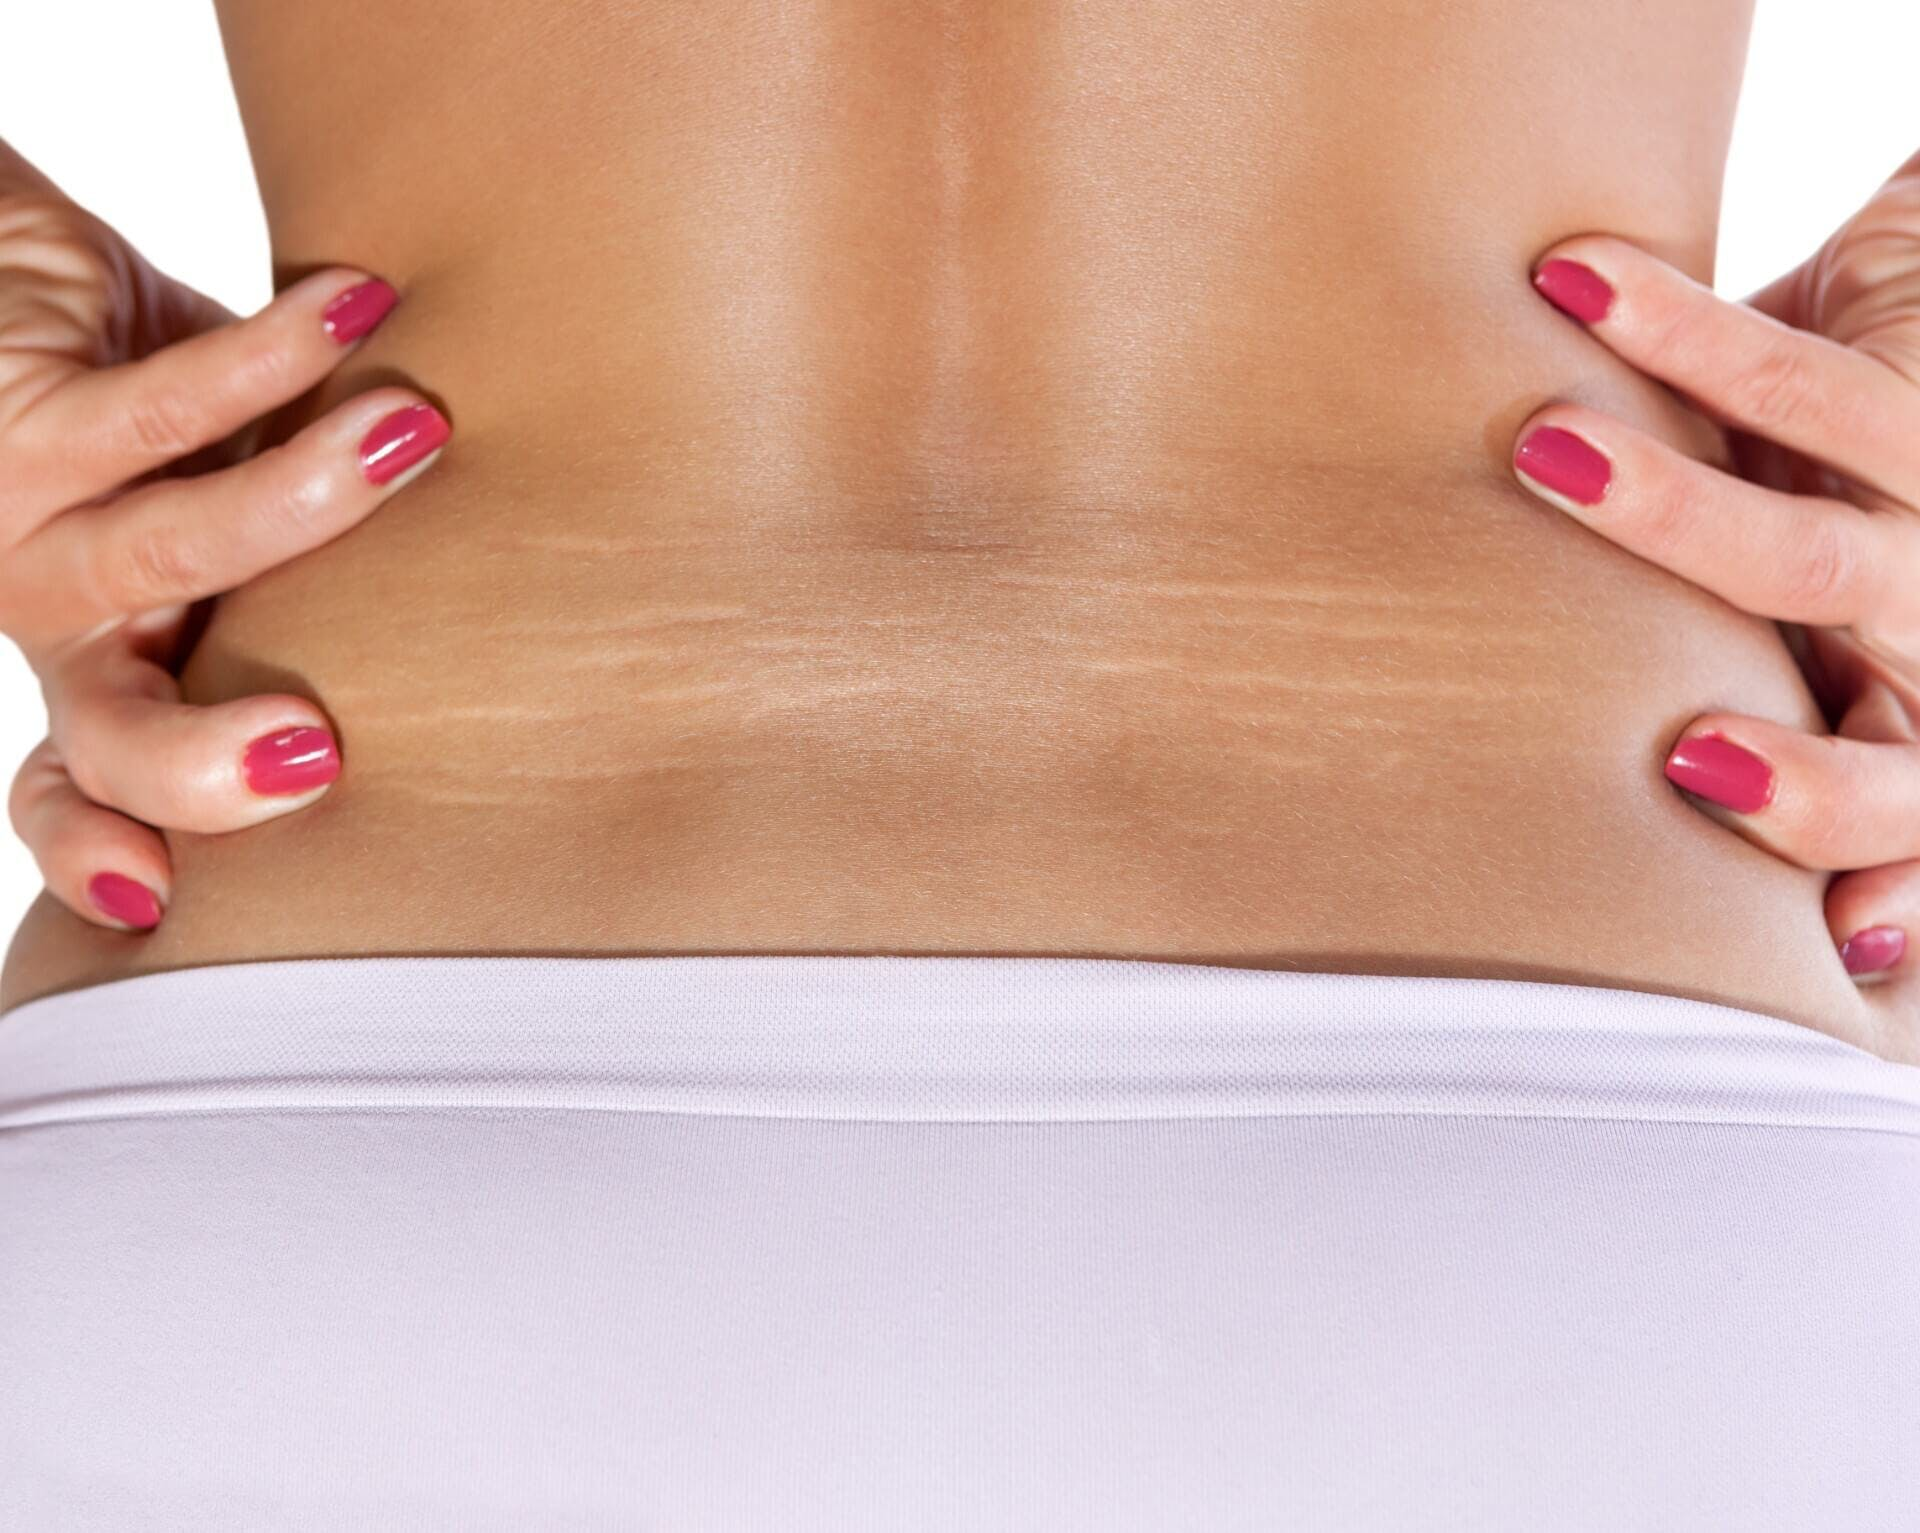 What You Should Know About Lower Back Liposuction in Atlanta